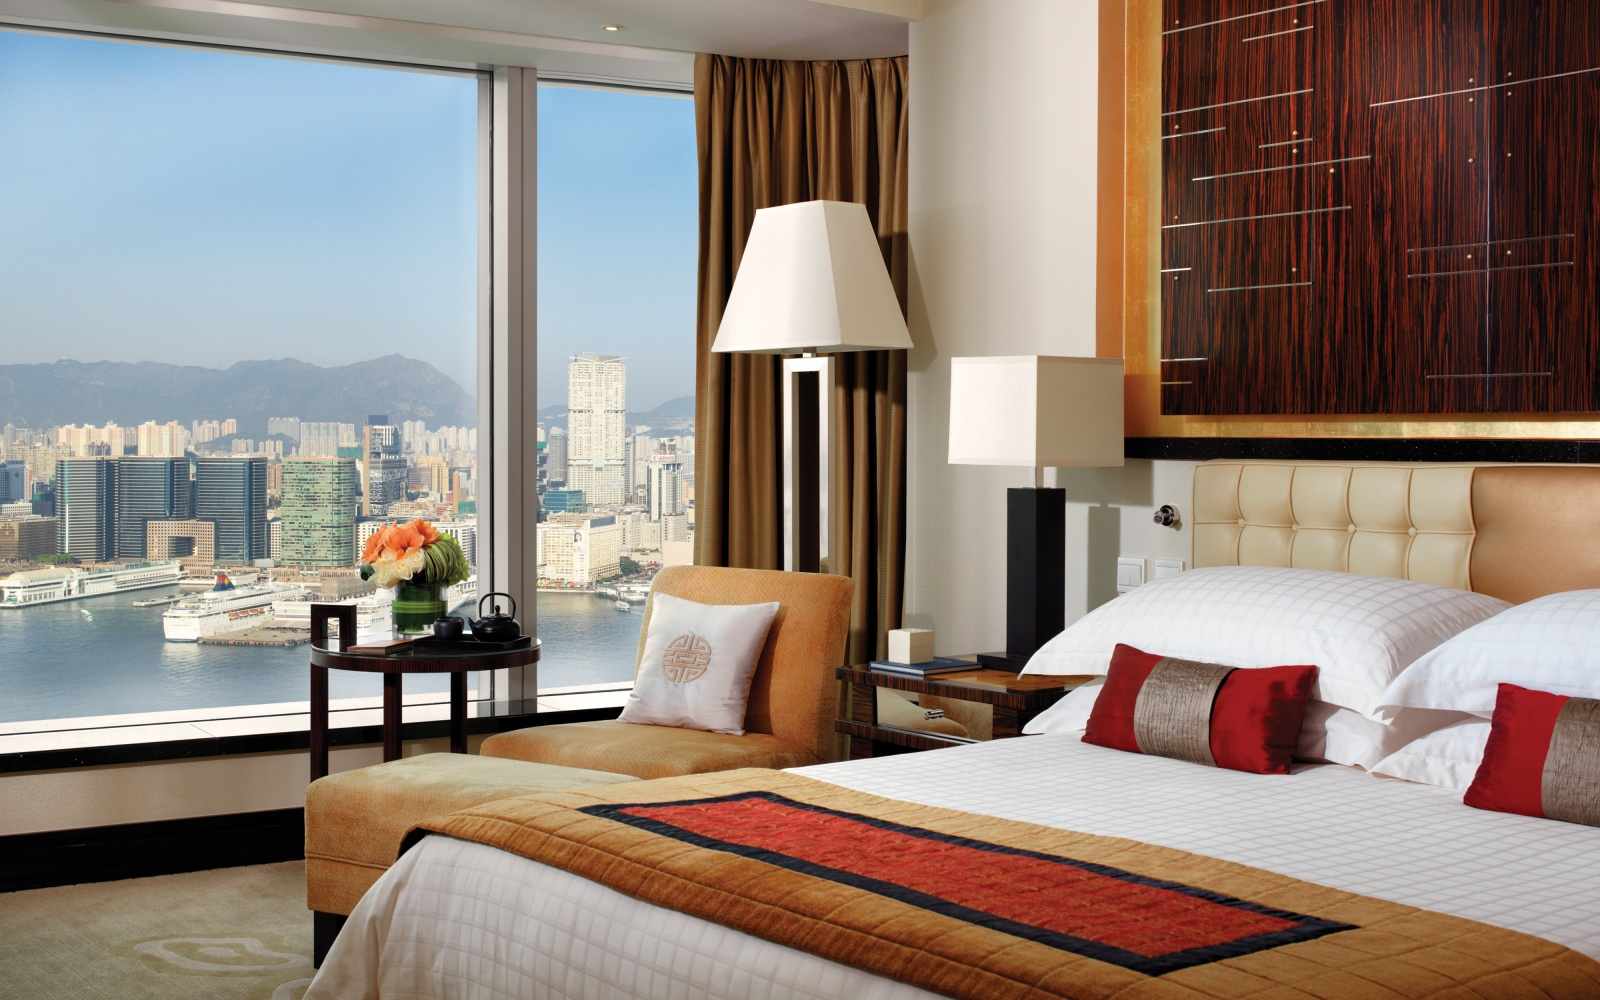 No. 11 Four Seasons Hotel Hong Kong